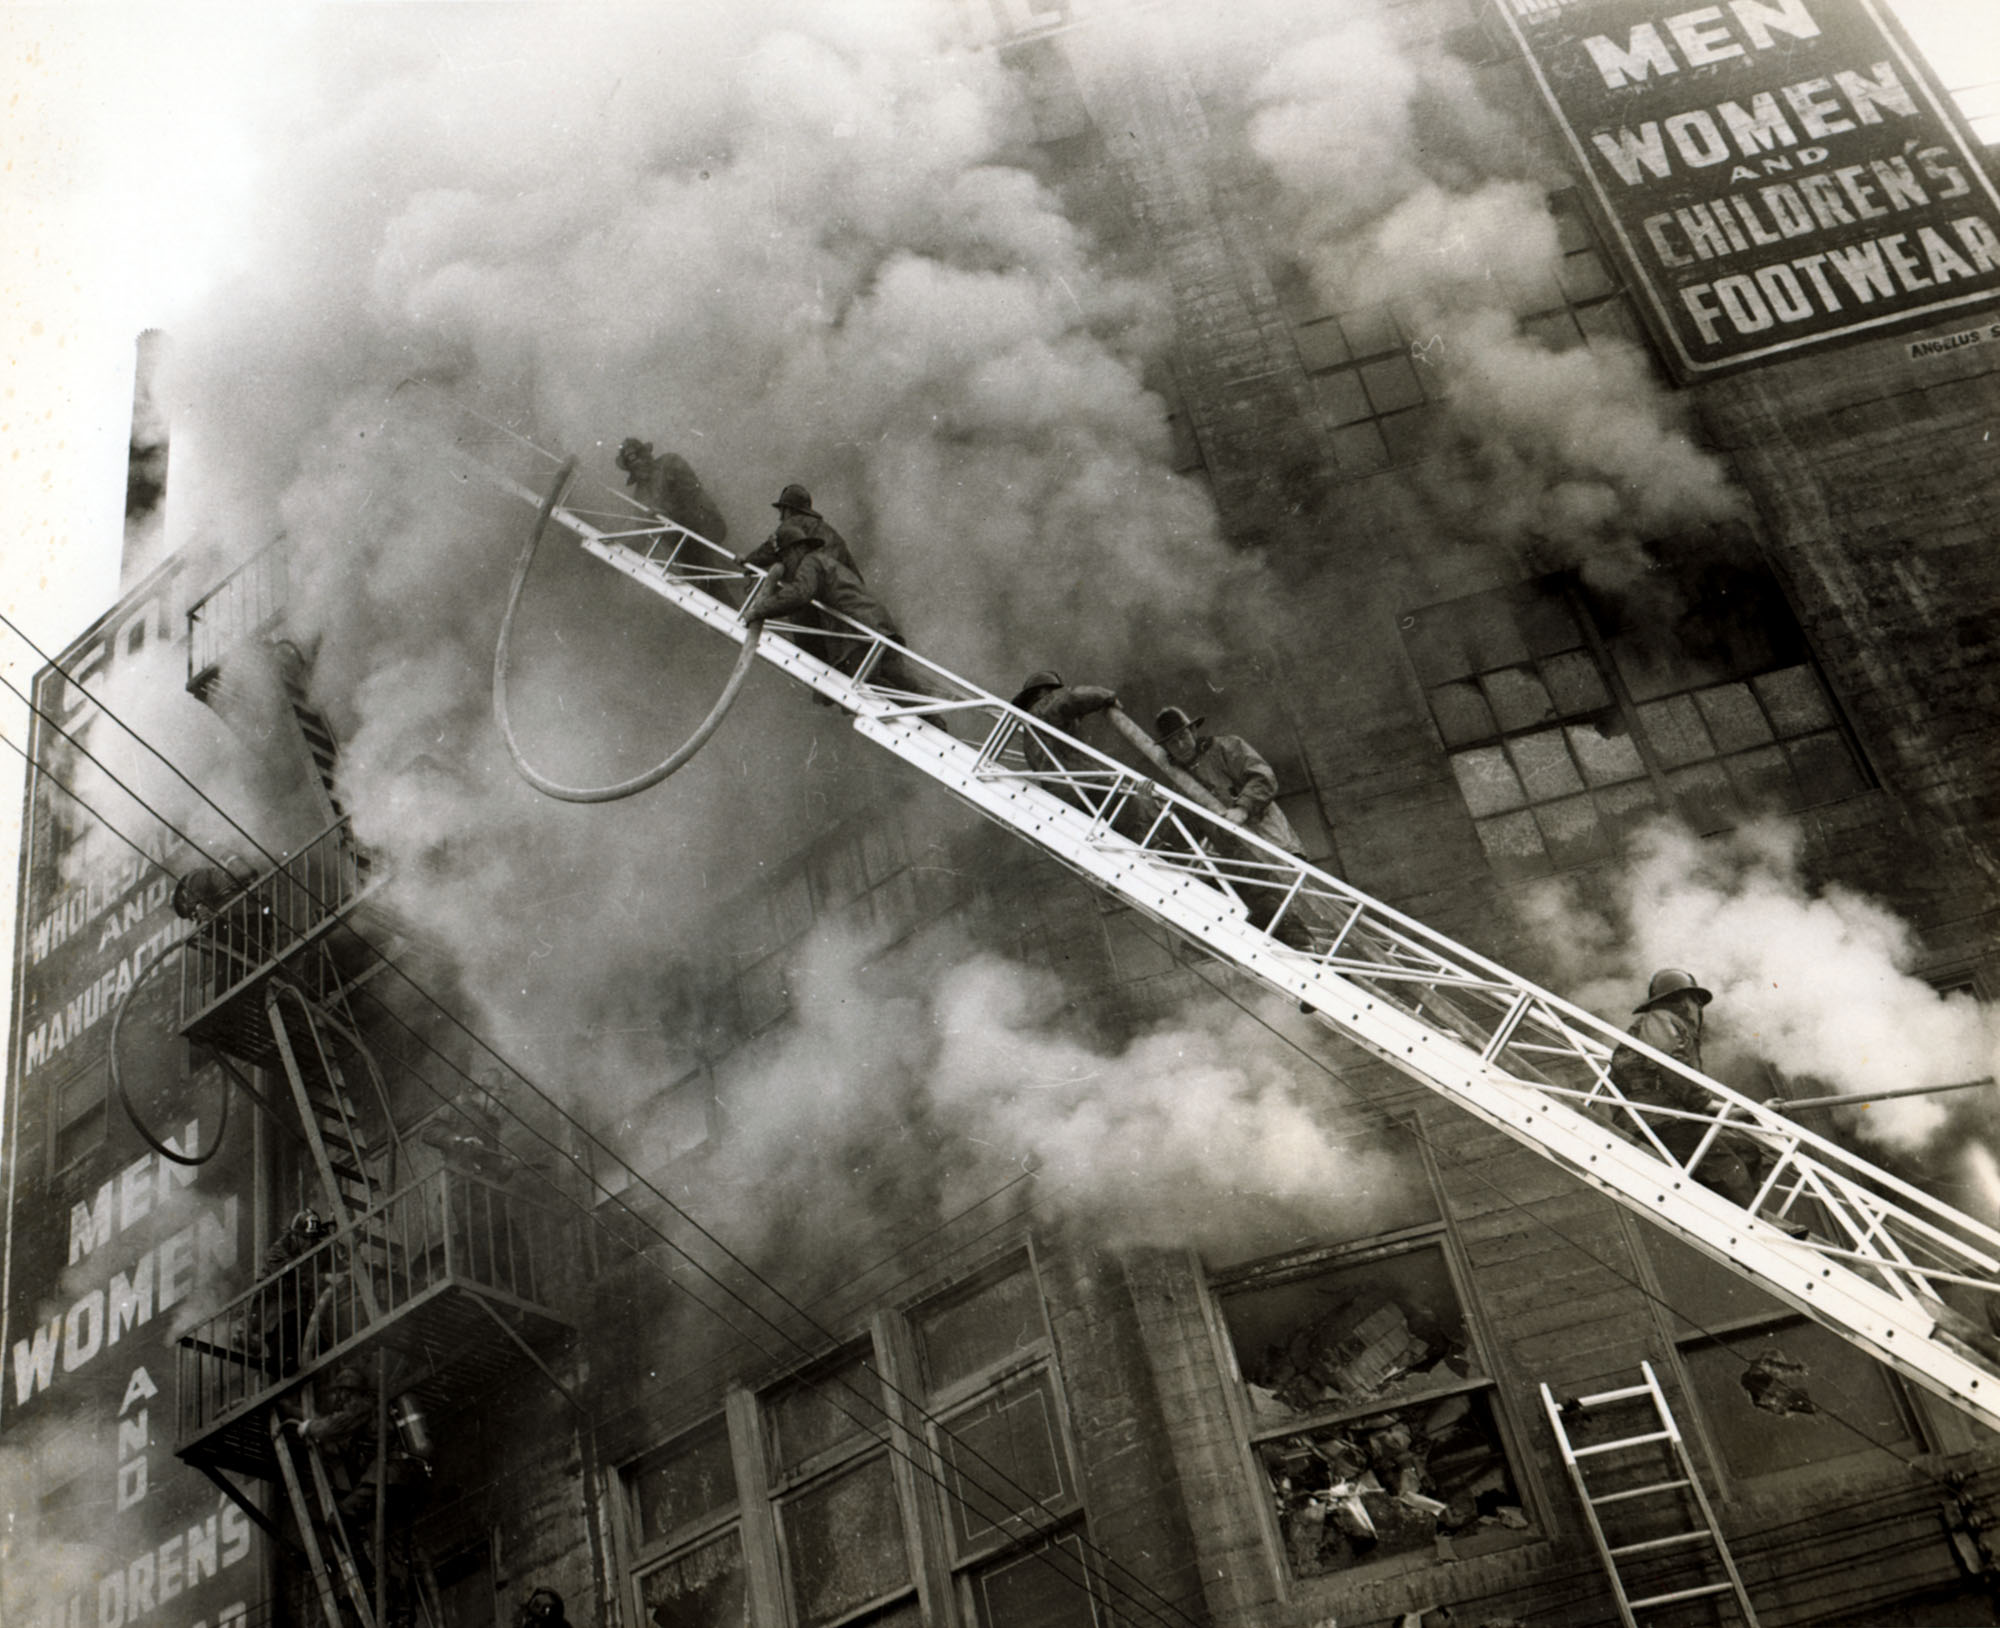 Lafd In Action January 22 1958